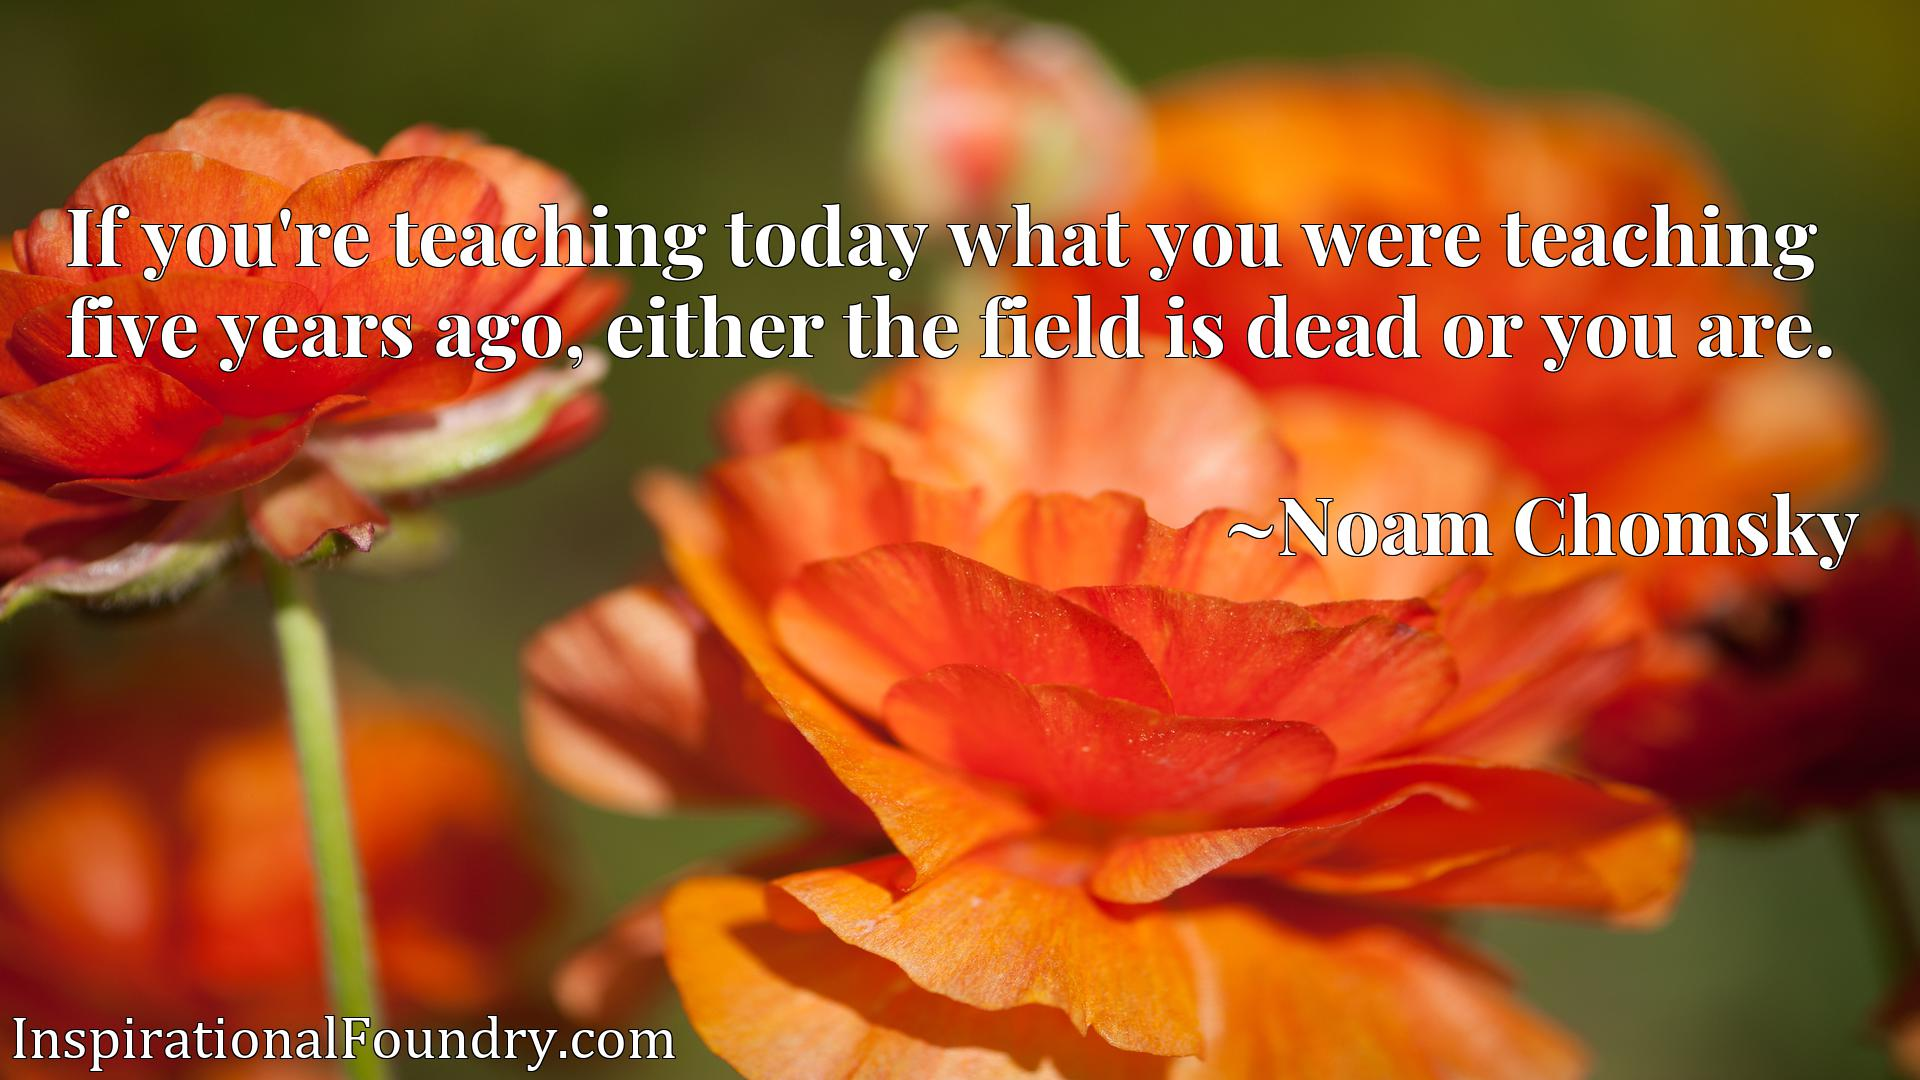 If you're teaching today what you were teaching five years ago, either the field is dead or you are.